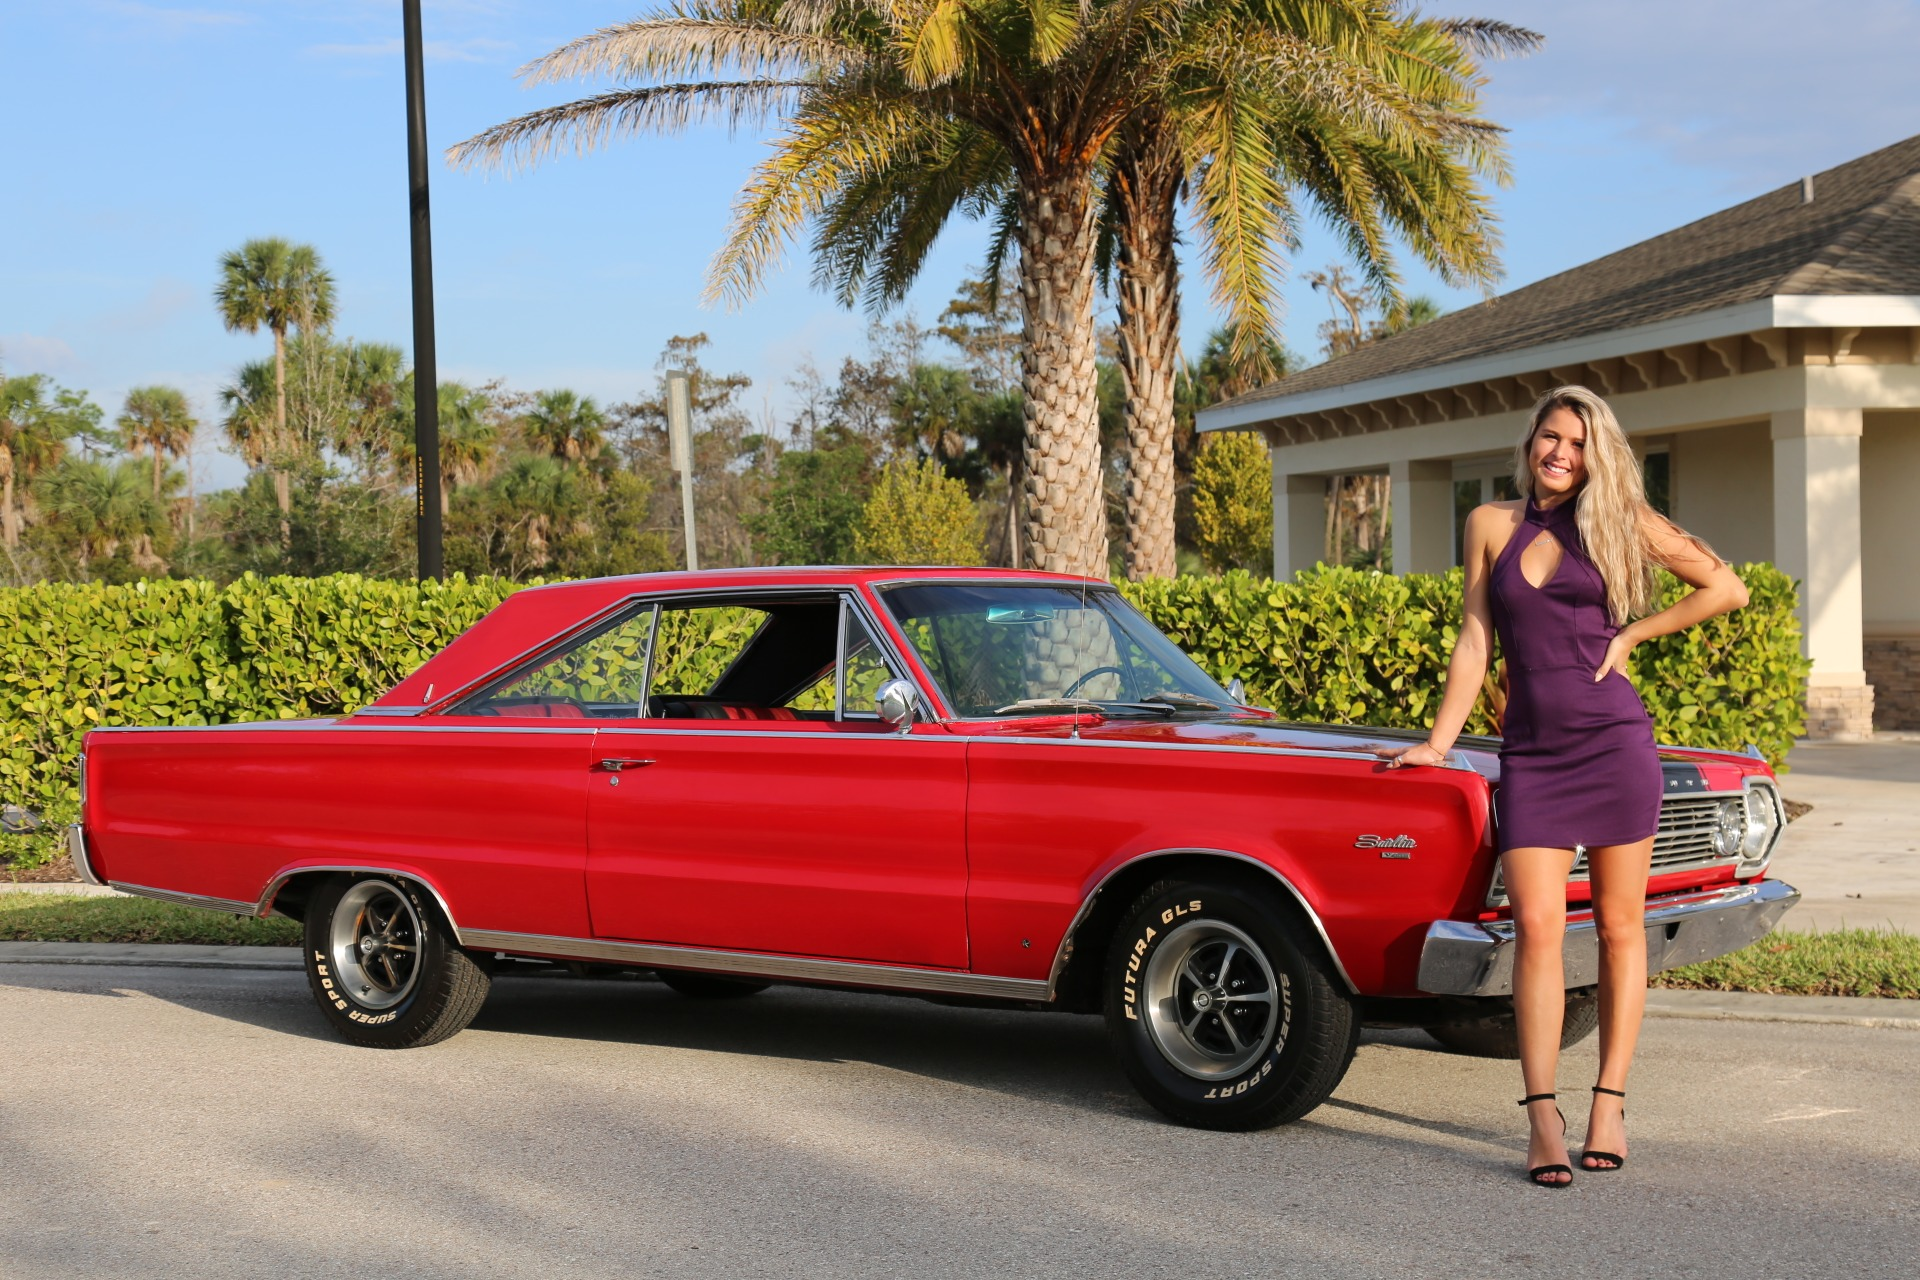 Used 1966 Plymouth Satellite 440 V8 Automatic for sale Sold at Muscle Cars for Sale Inc. in Fort Myers FL 33912 1